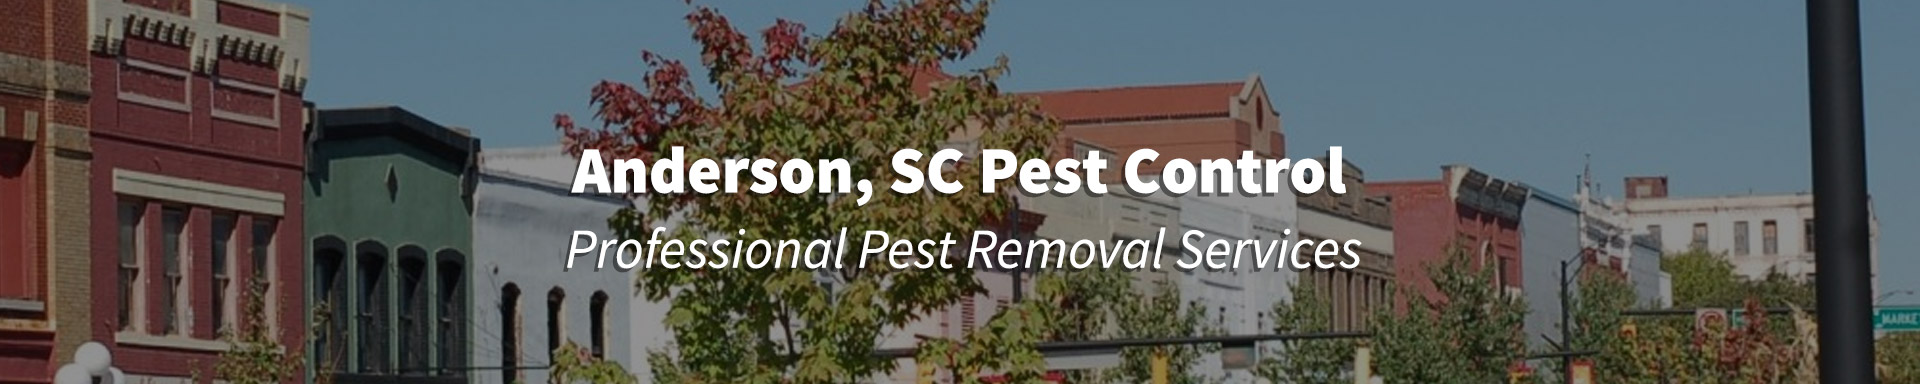 Pest Control in Anderson, South Carolina